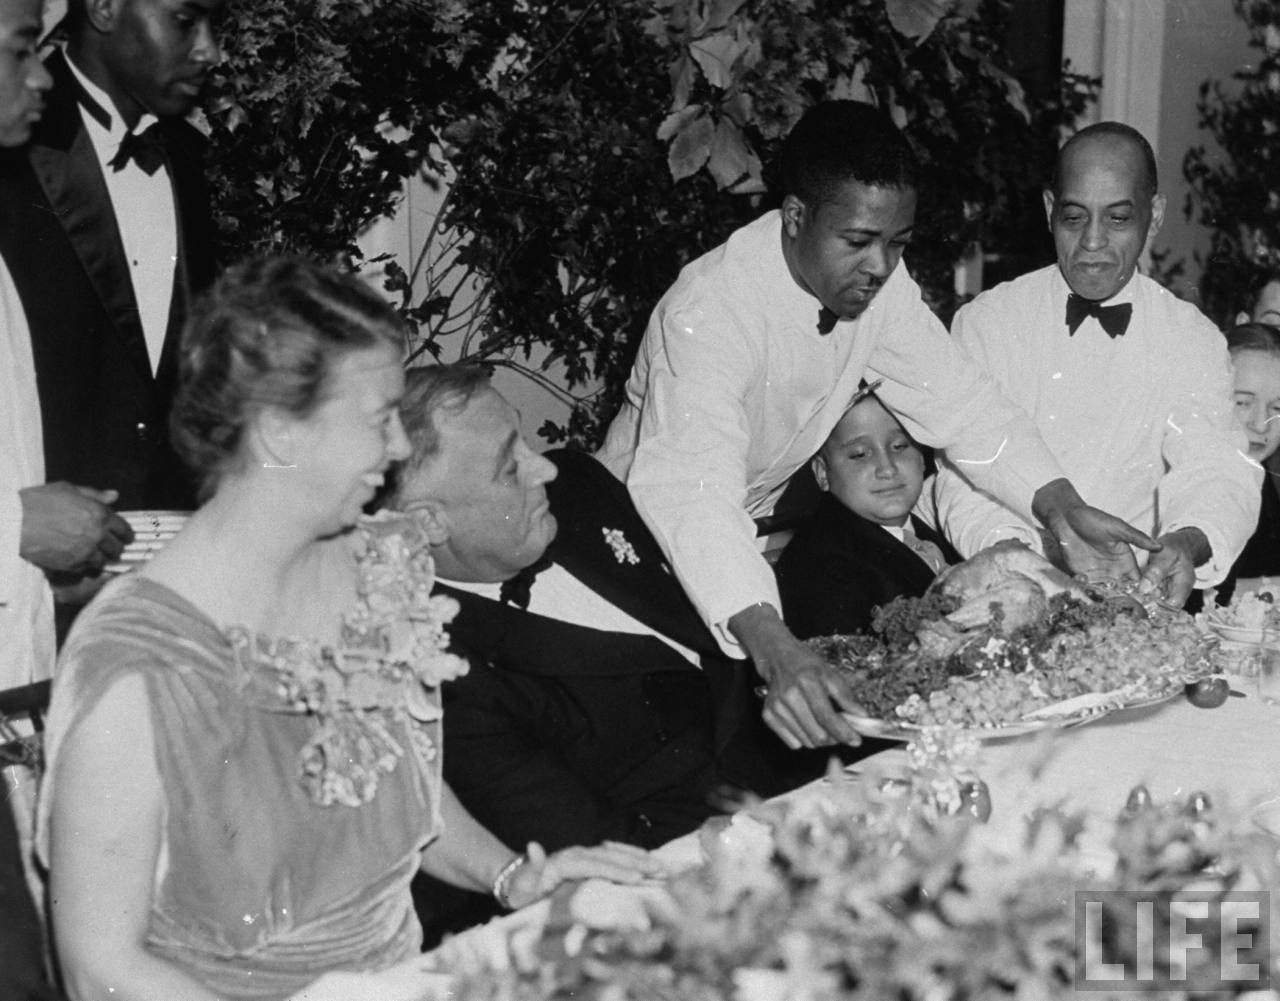 President Franklin D. Roosevelt (C), ducking as the Thanksgiving turkey takes the throne. Photographer:Thomas D. Mcavoy. © Time Inc